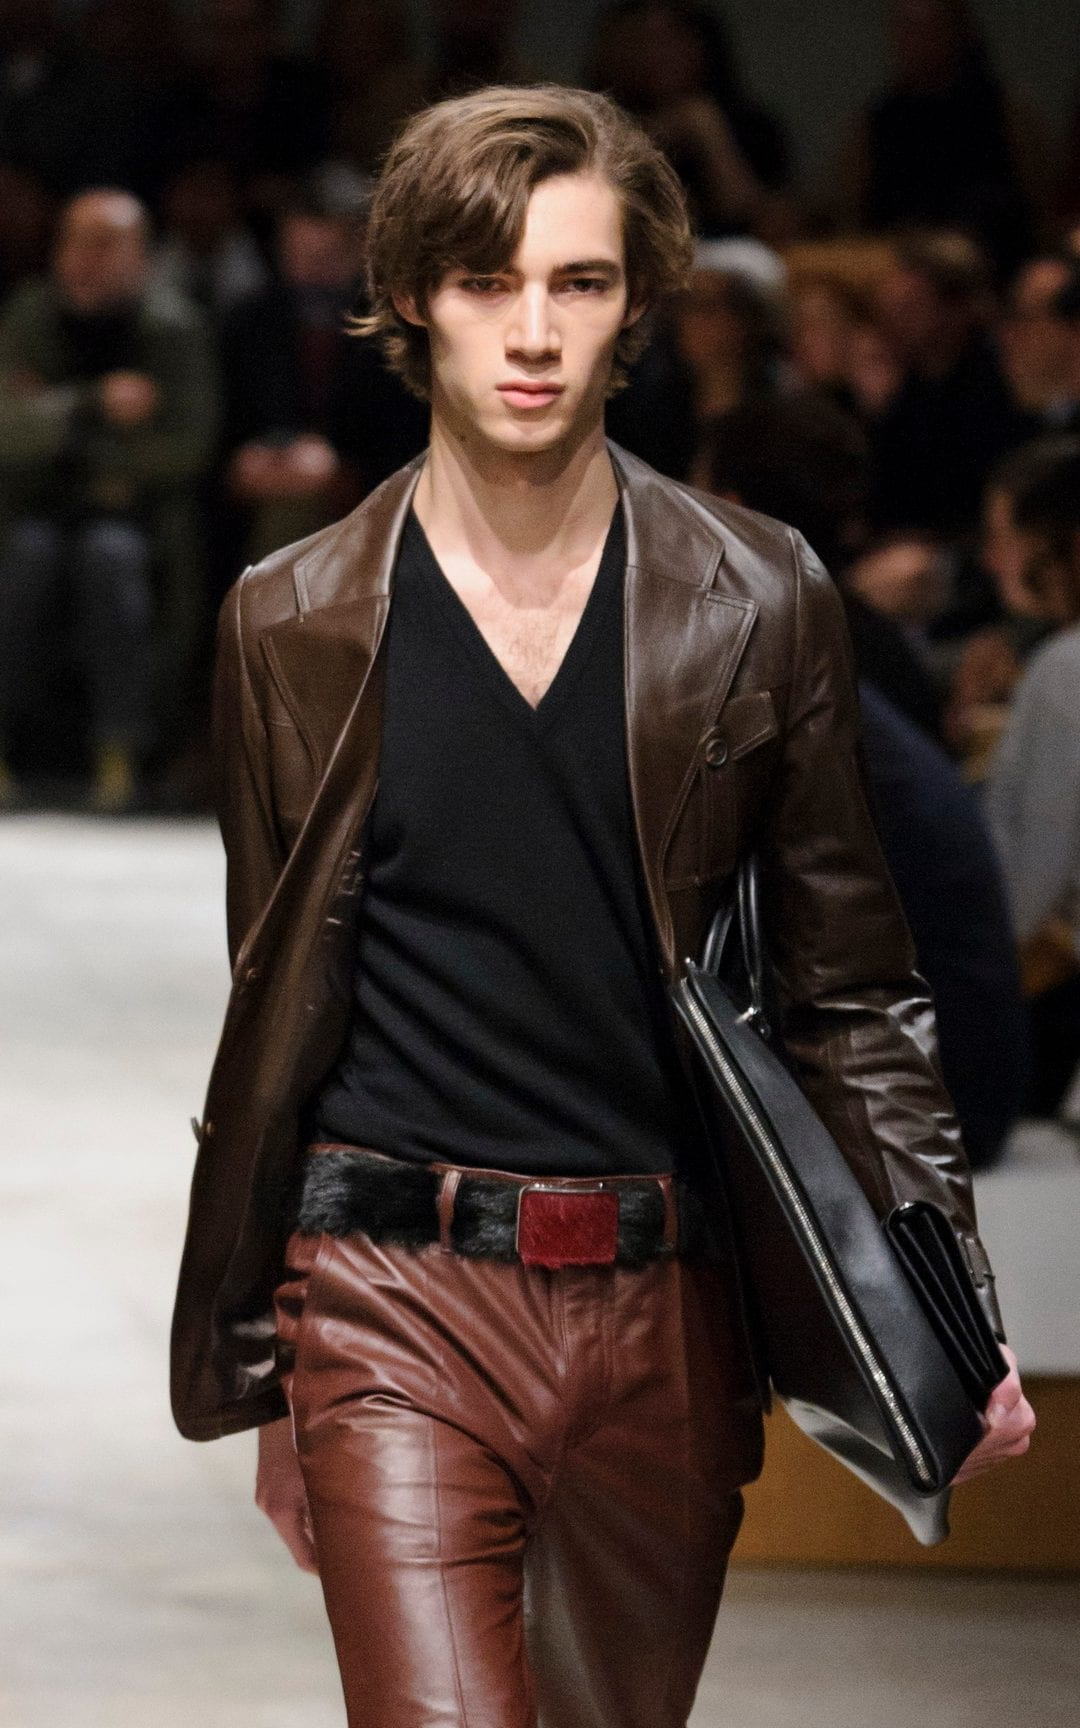 Prada revives normcore and Seventies cool